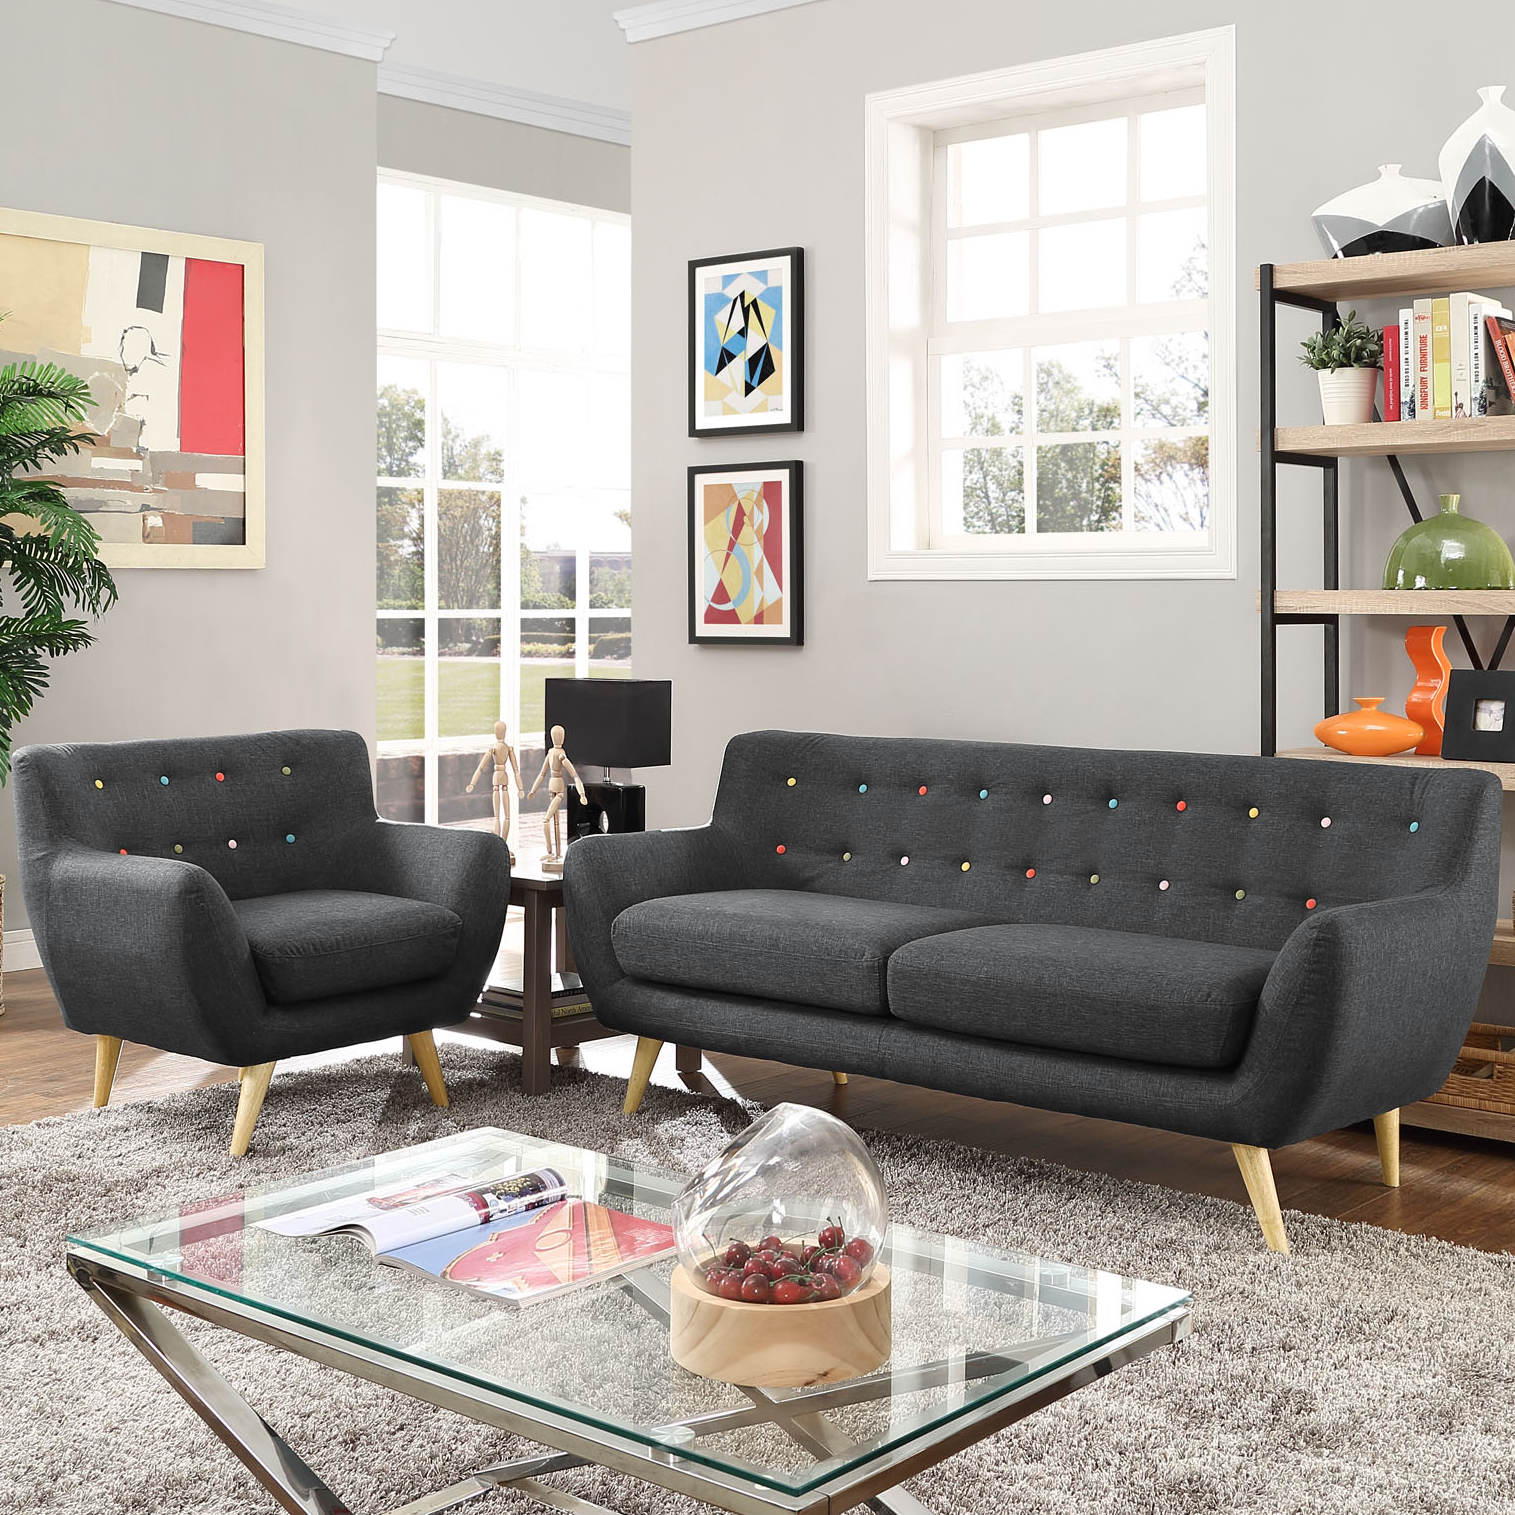 Elegant Indian Sofa Designs For Small Drawing Room In Home: Modern & Contemporary Living Room Furniture